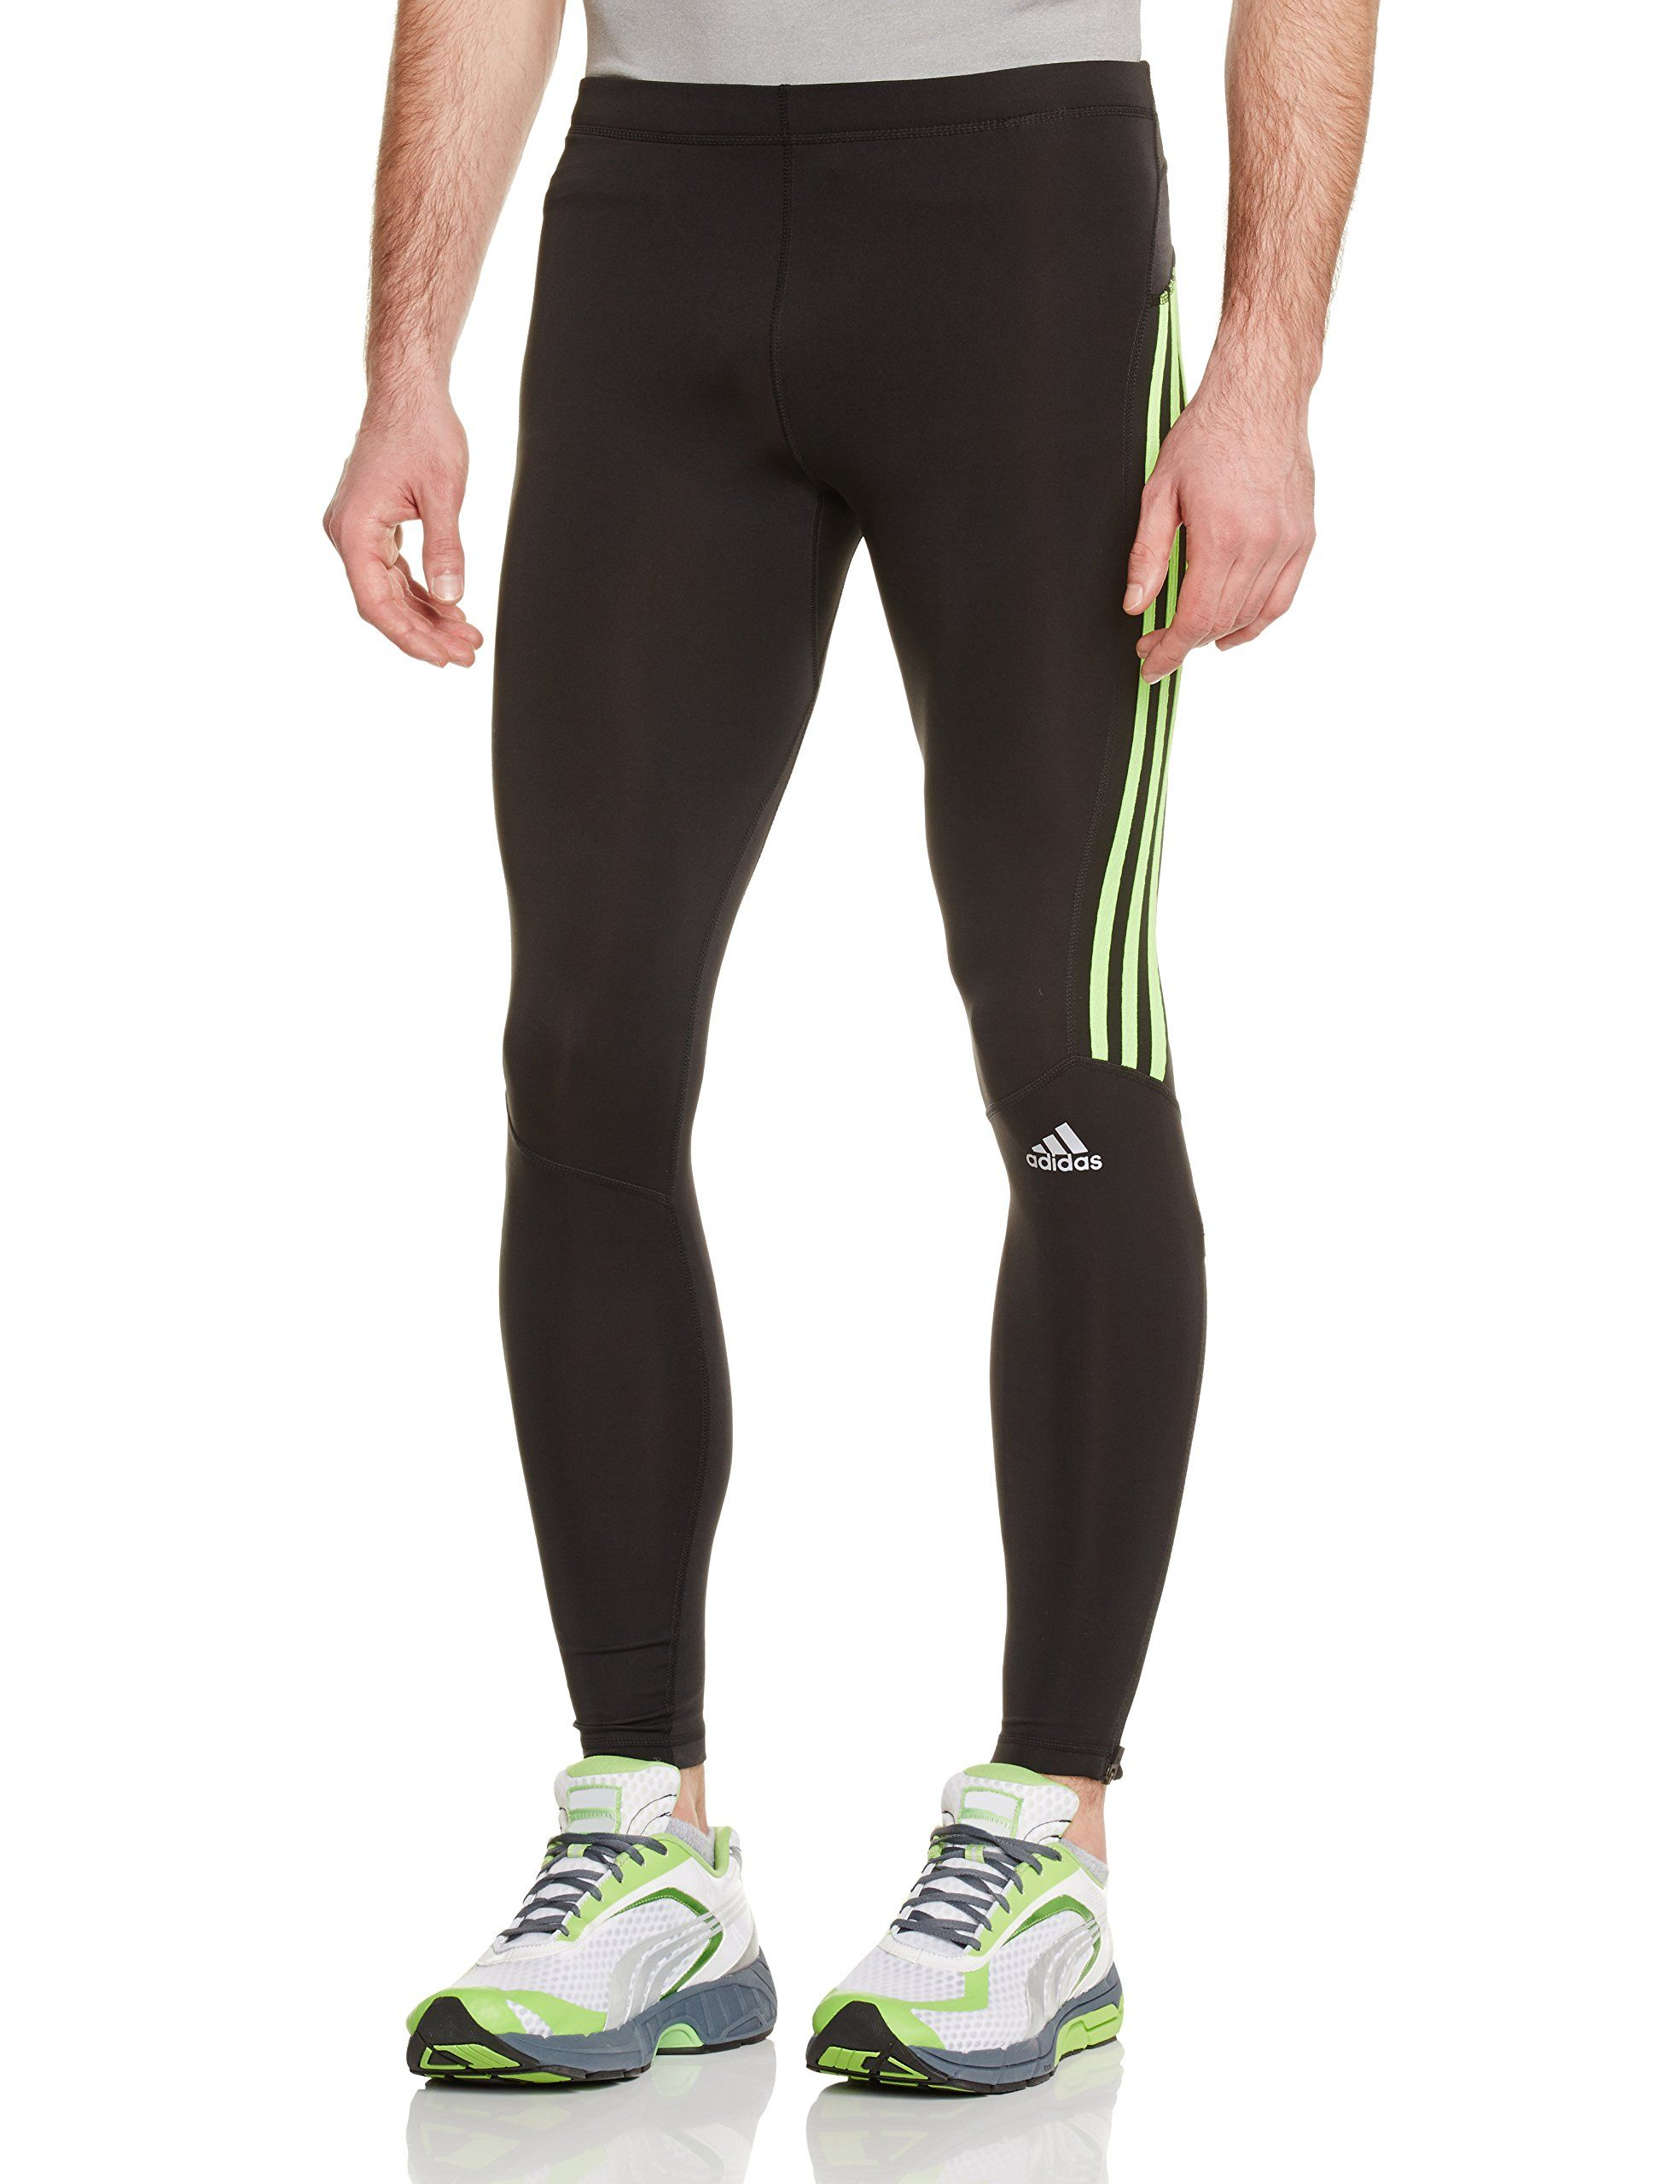 355e307976 adidas Men s Response Long Tight  Amazon.co.uk  Sports   Outdoors ...